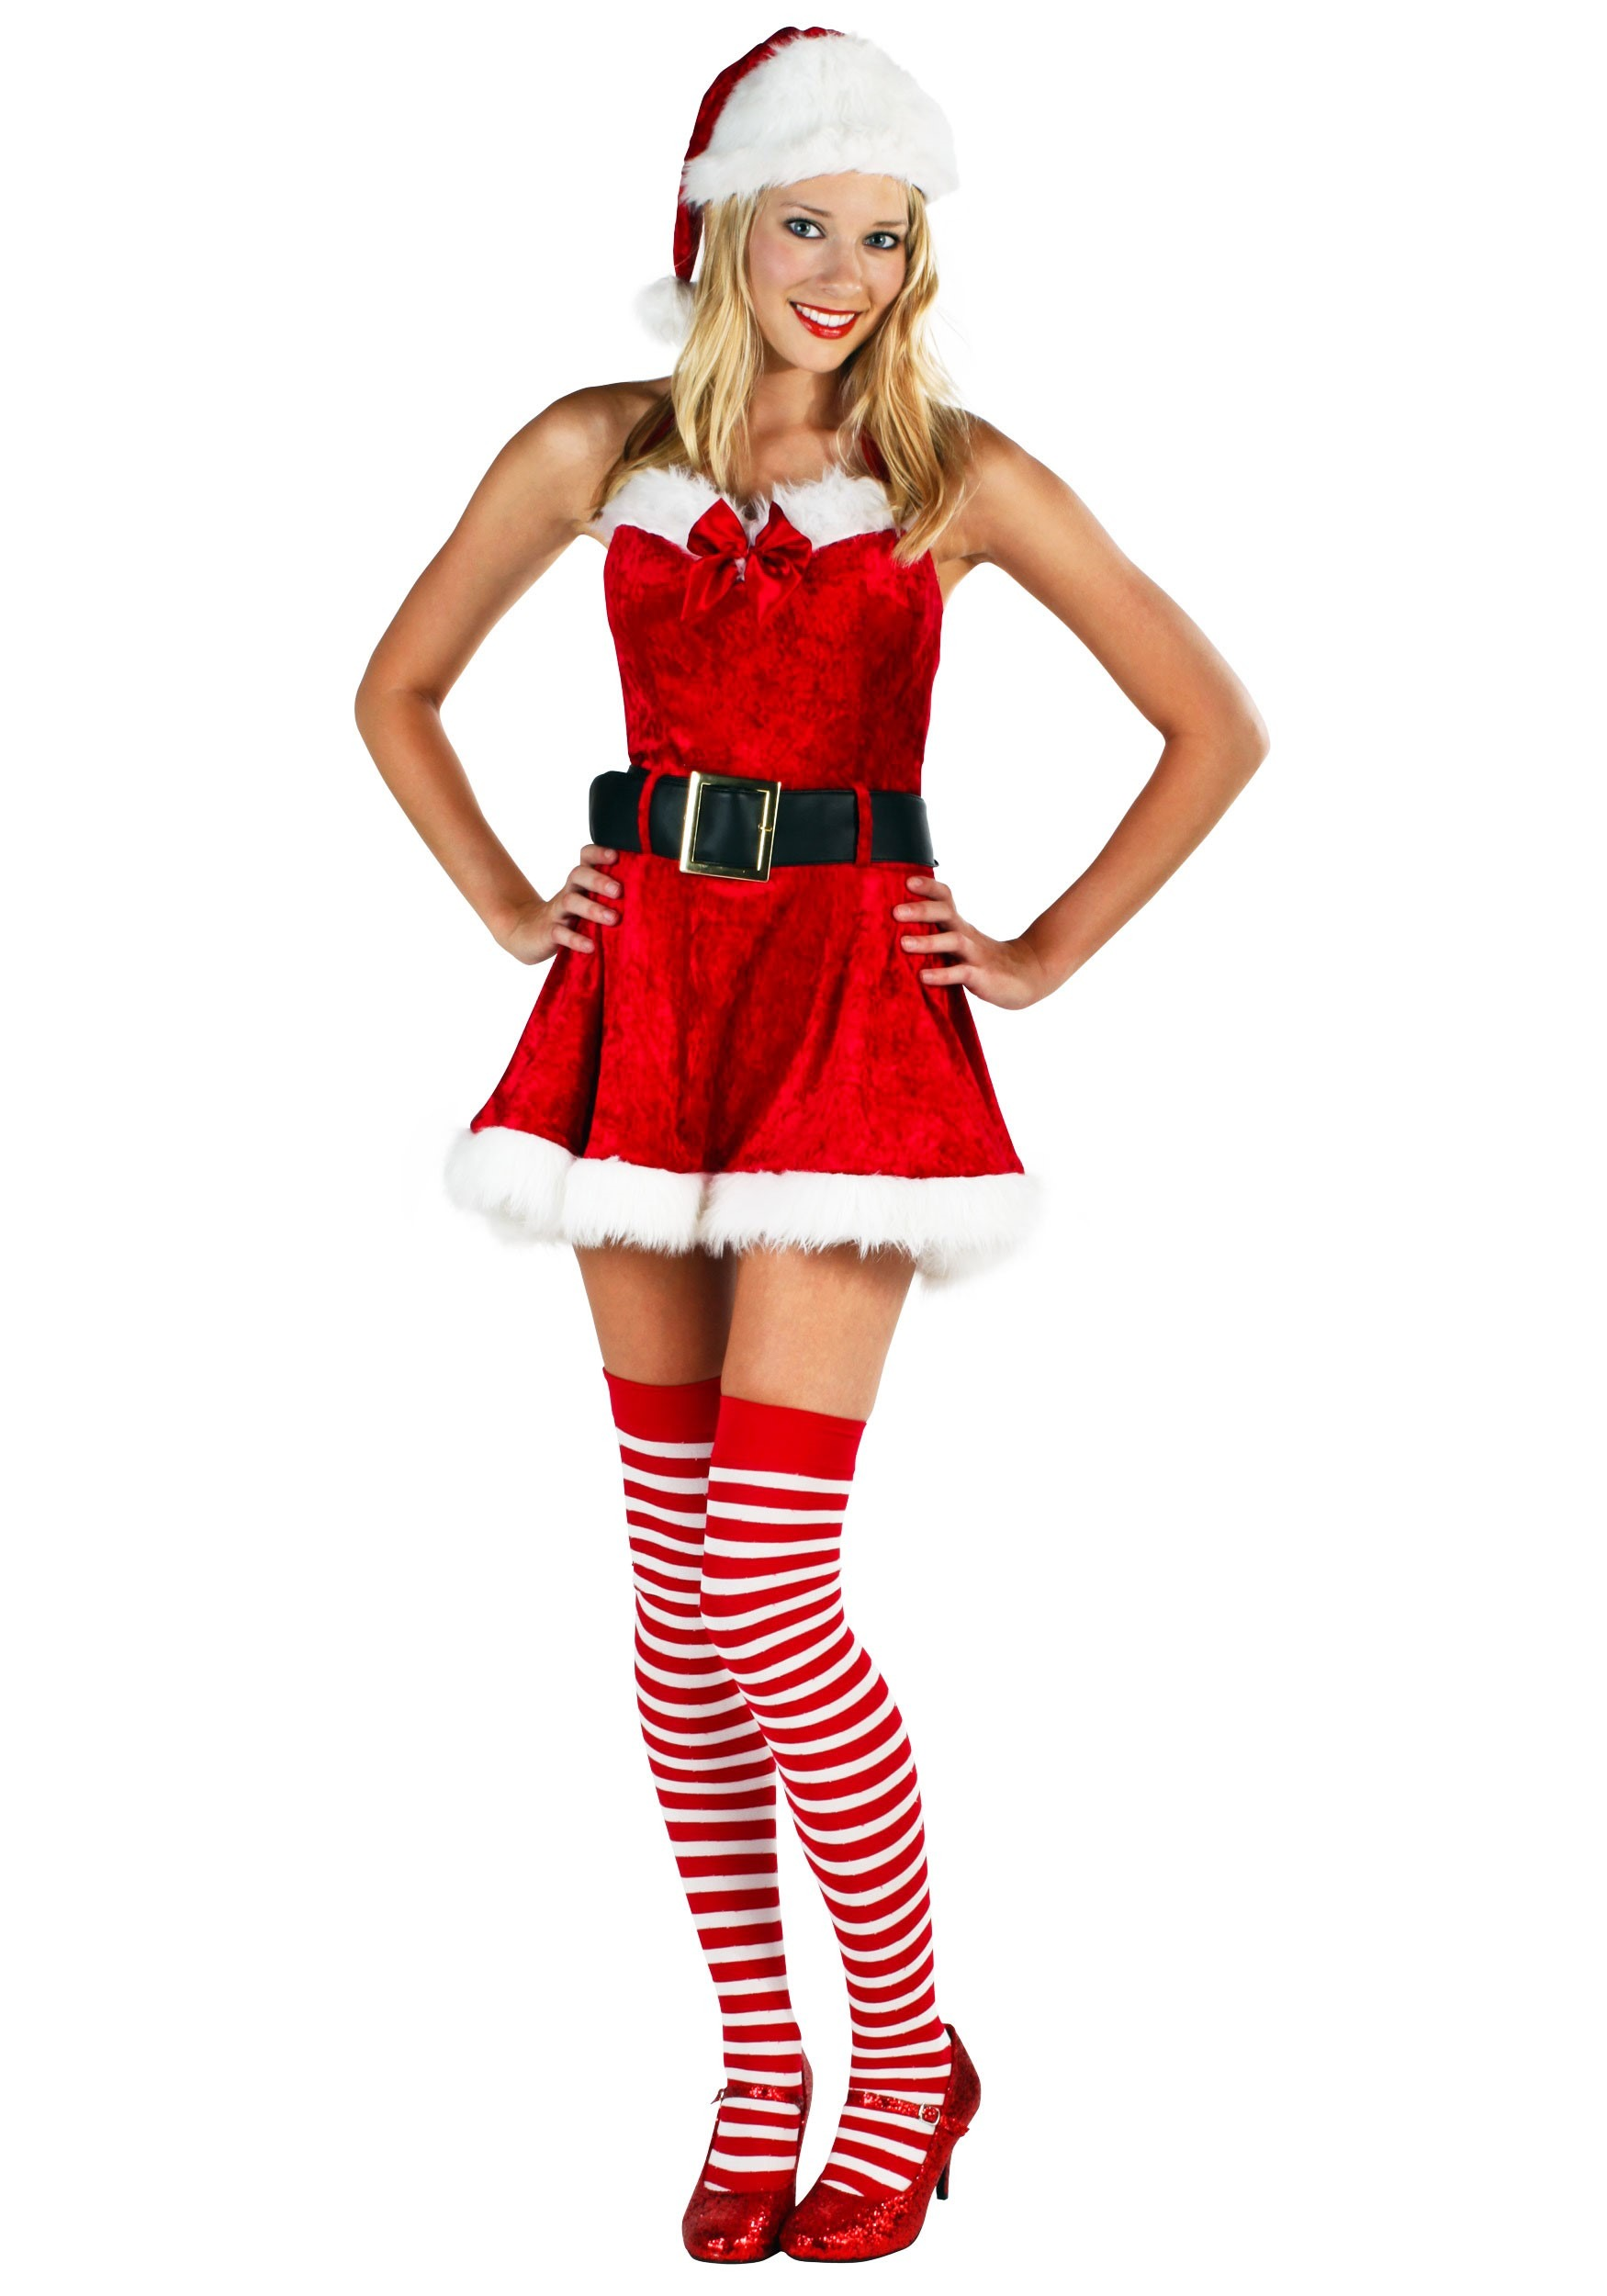 Sexy Christmas Costume - Women's Mrs. Claus Costumes